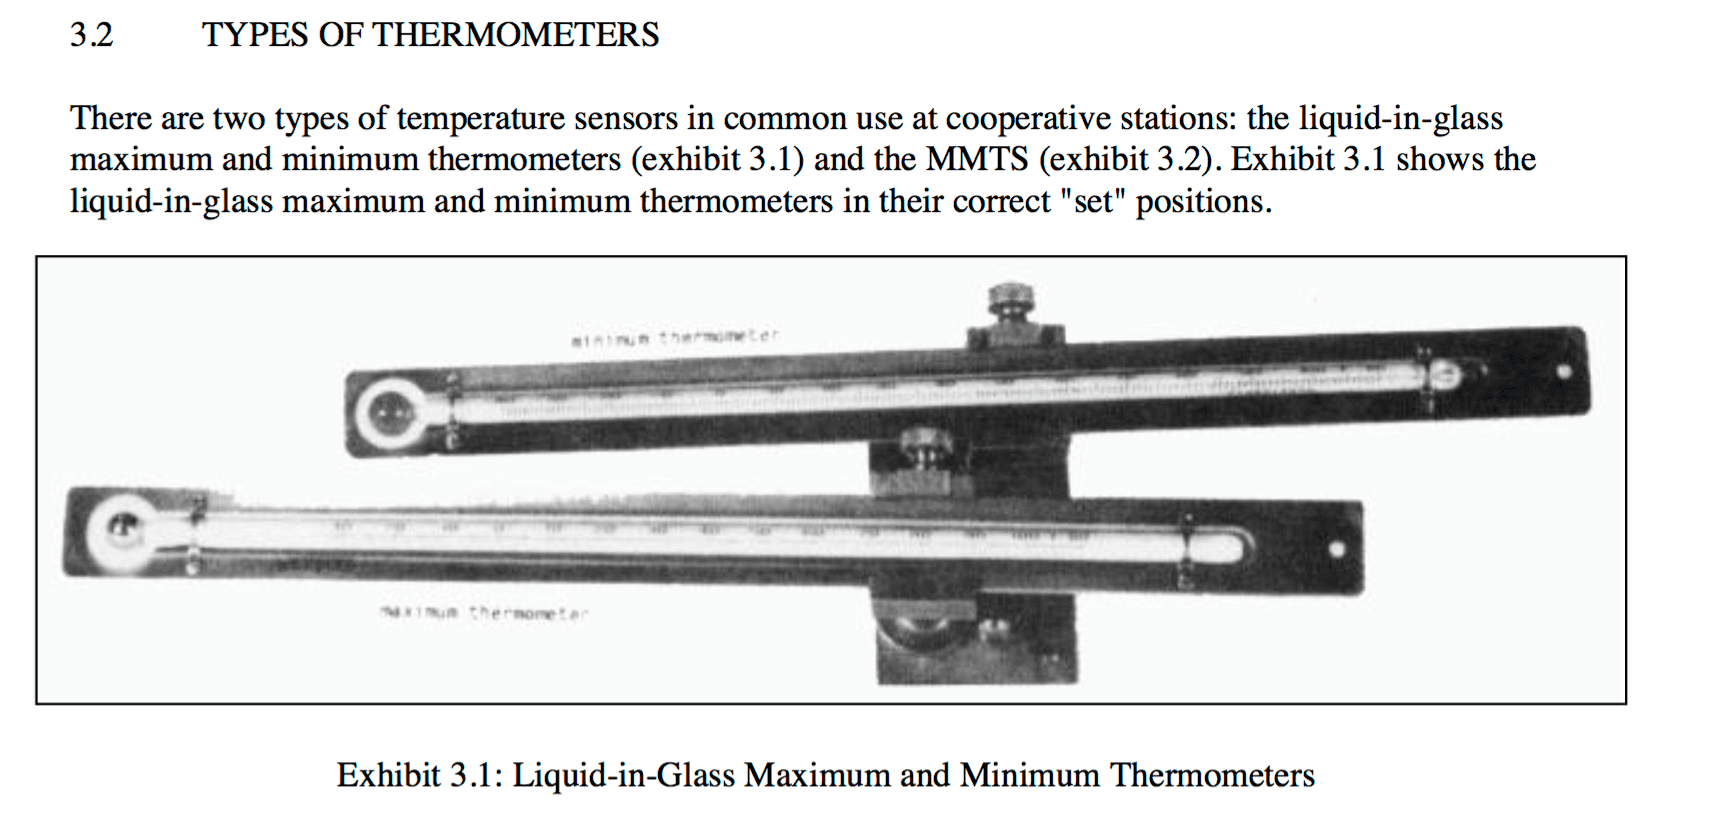 officialNOAAthermometer.png